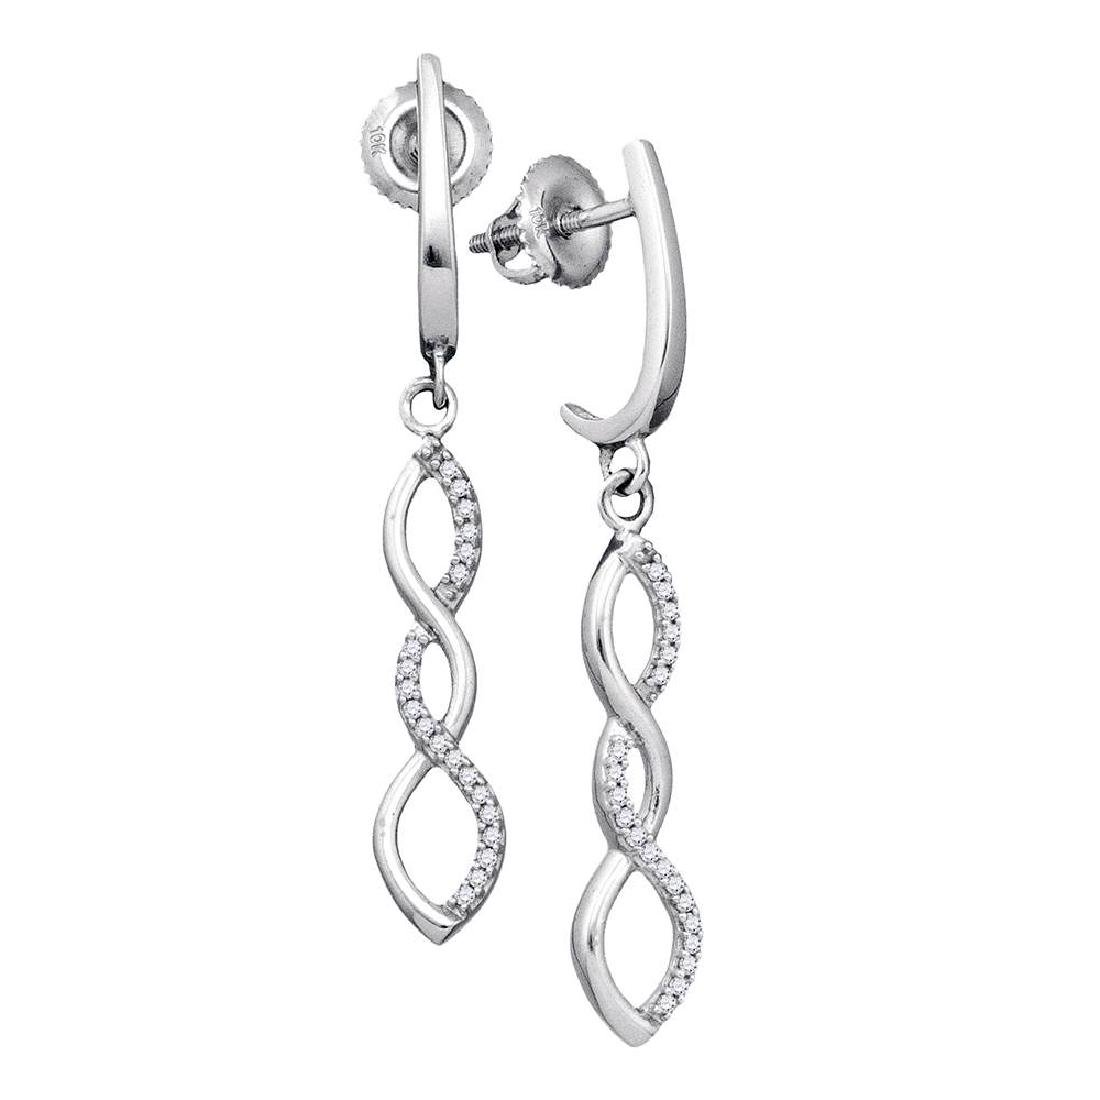 0.14 CTW Diamond Infinity Dangle Earrings 10KT White